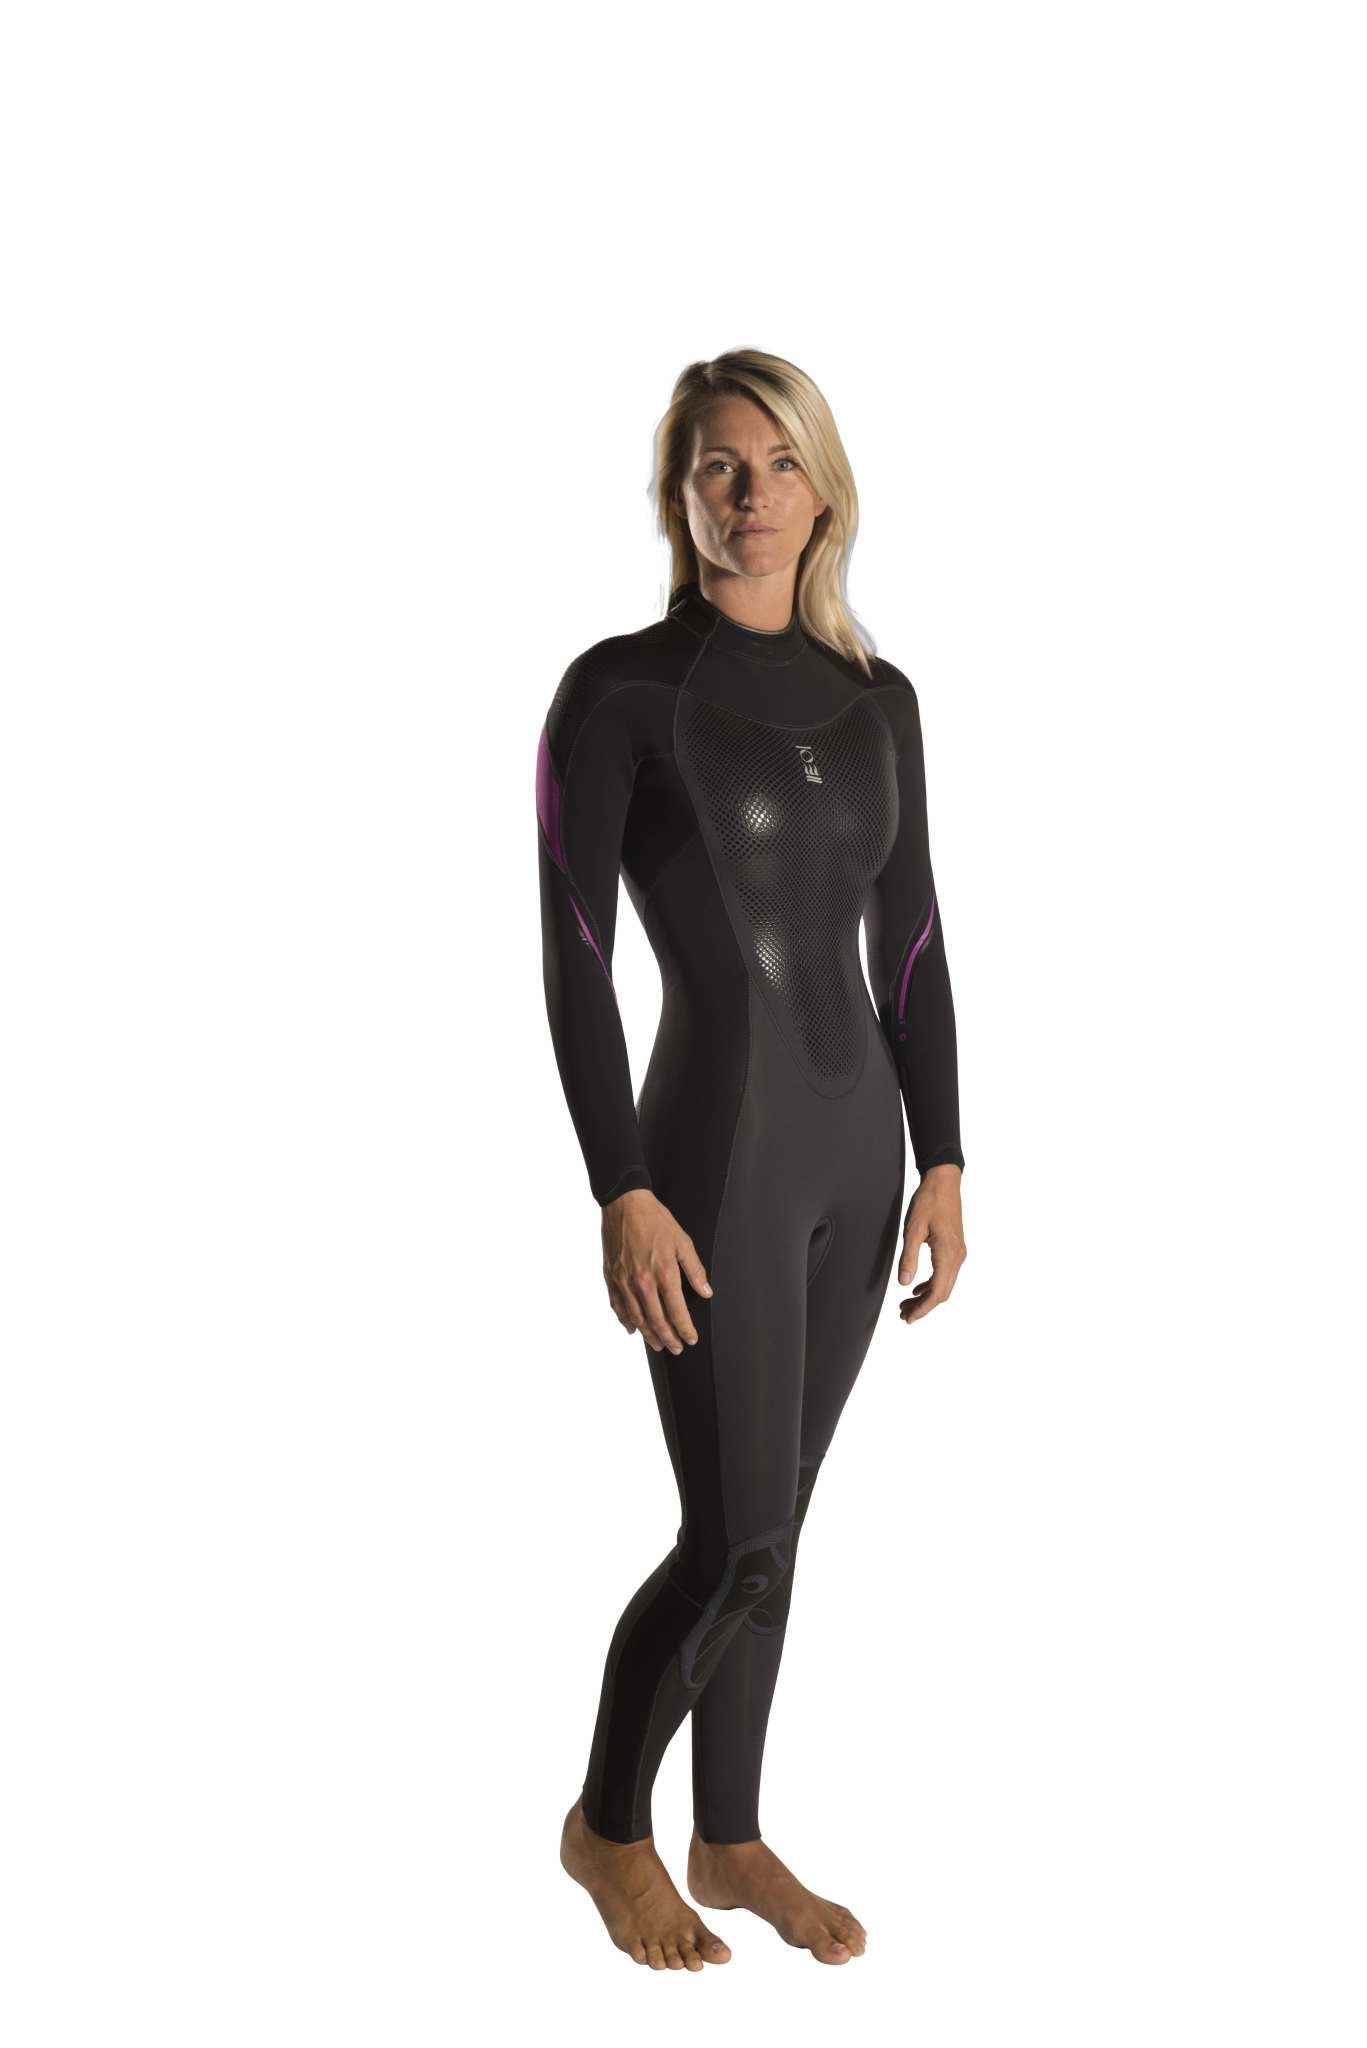 XENOS Dames 3mm Wetsuit-1